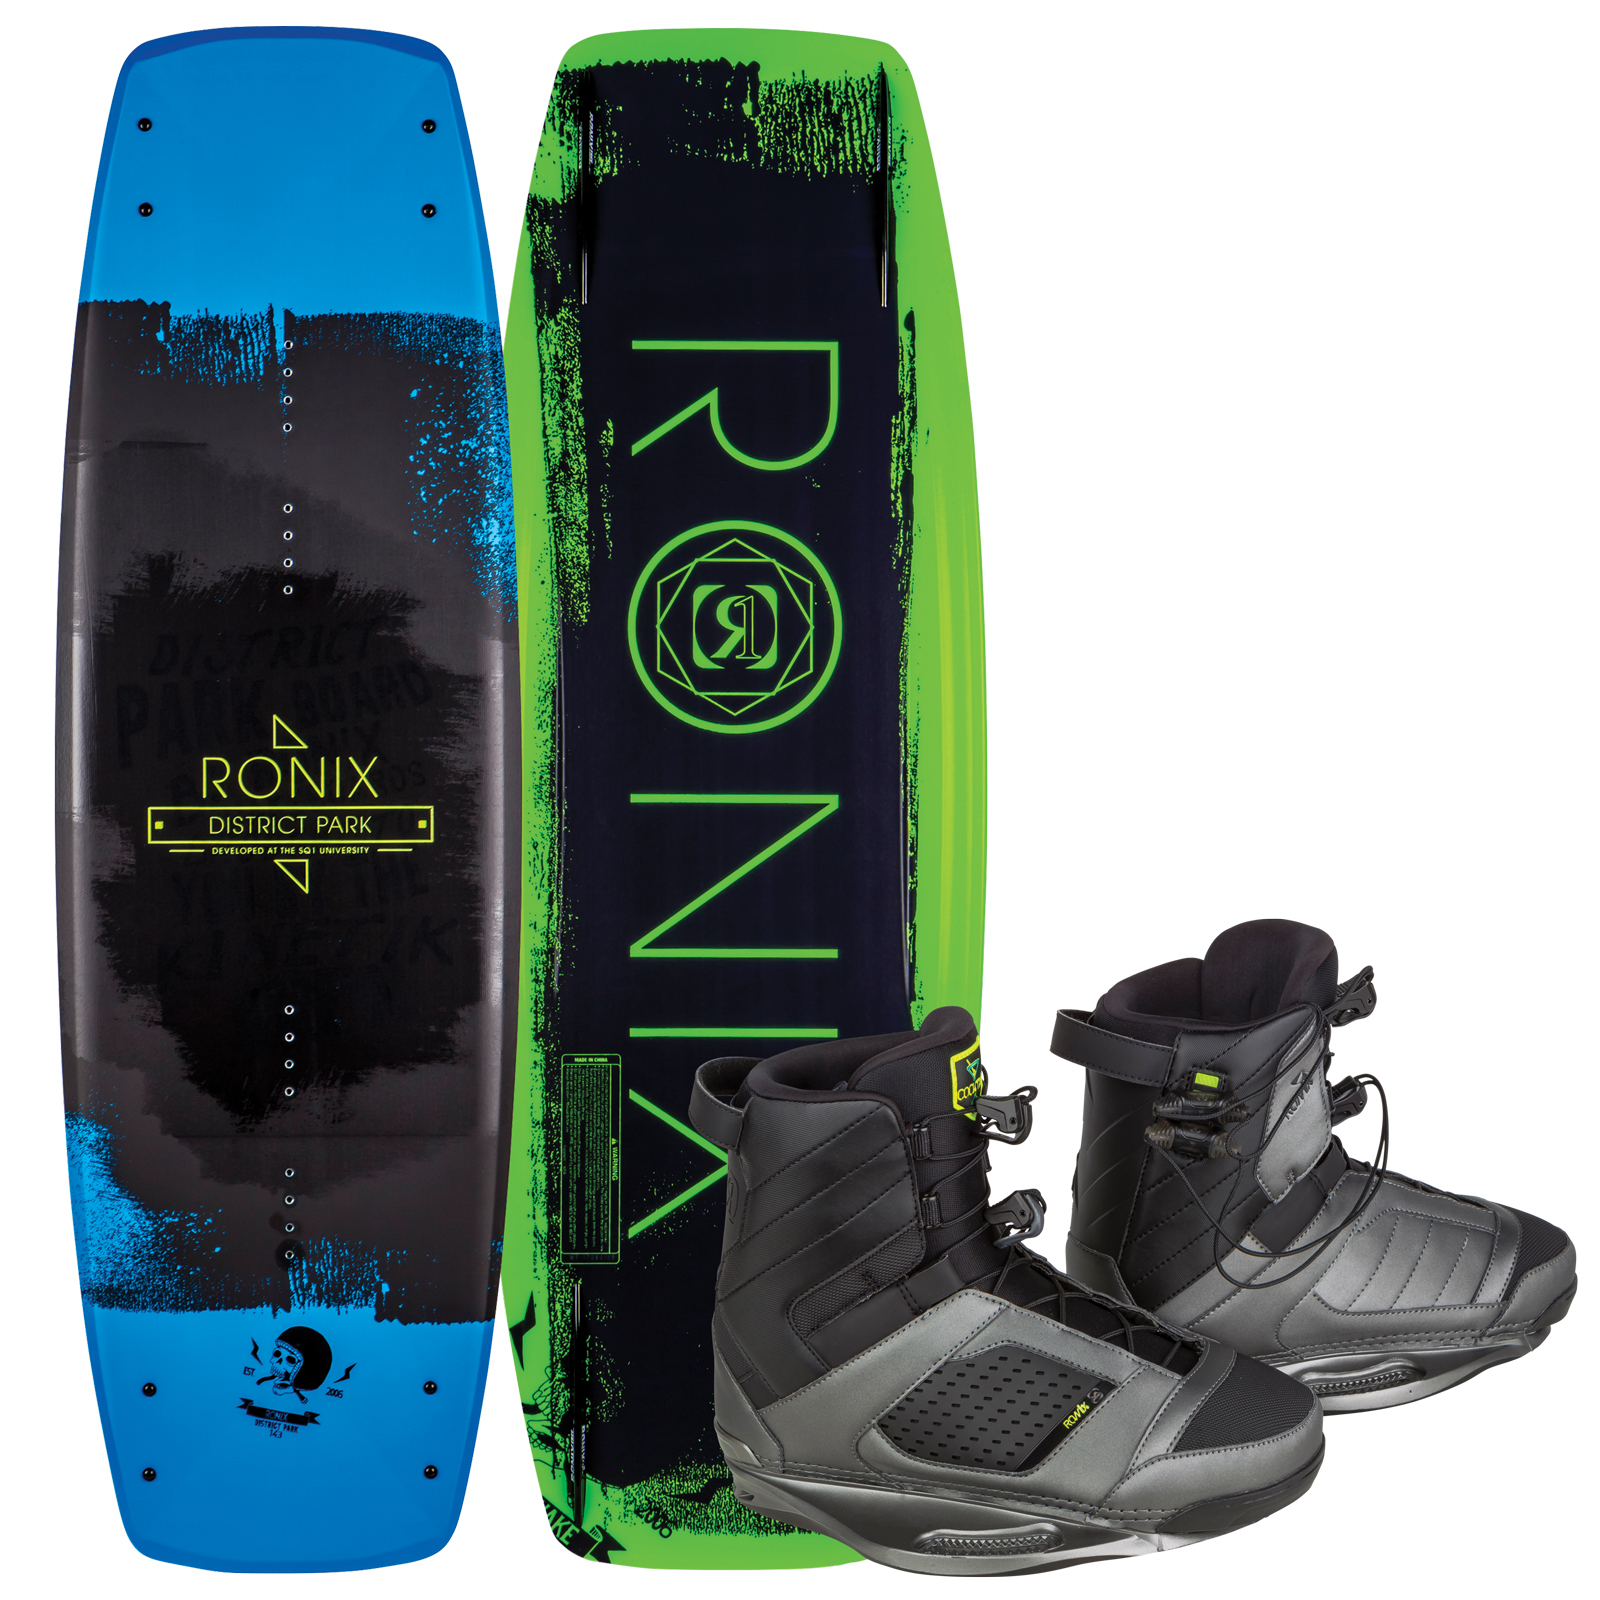 DISTRICT PARK 138 W/ COCKTAIL PACKAGE RONIX 2017